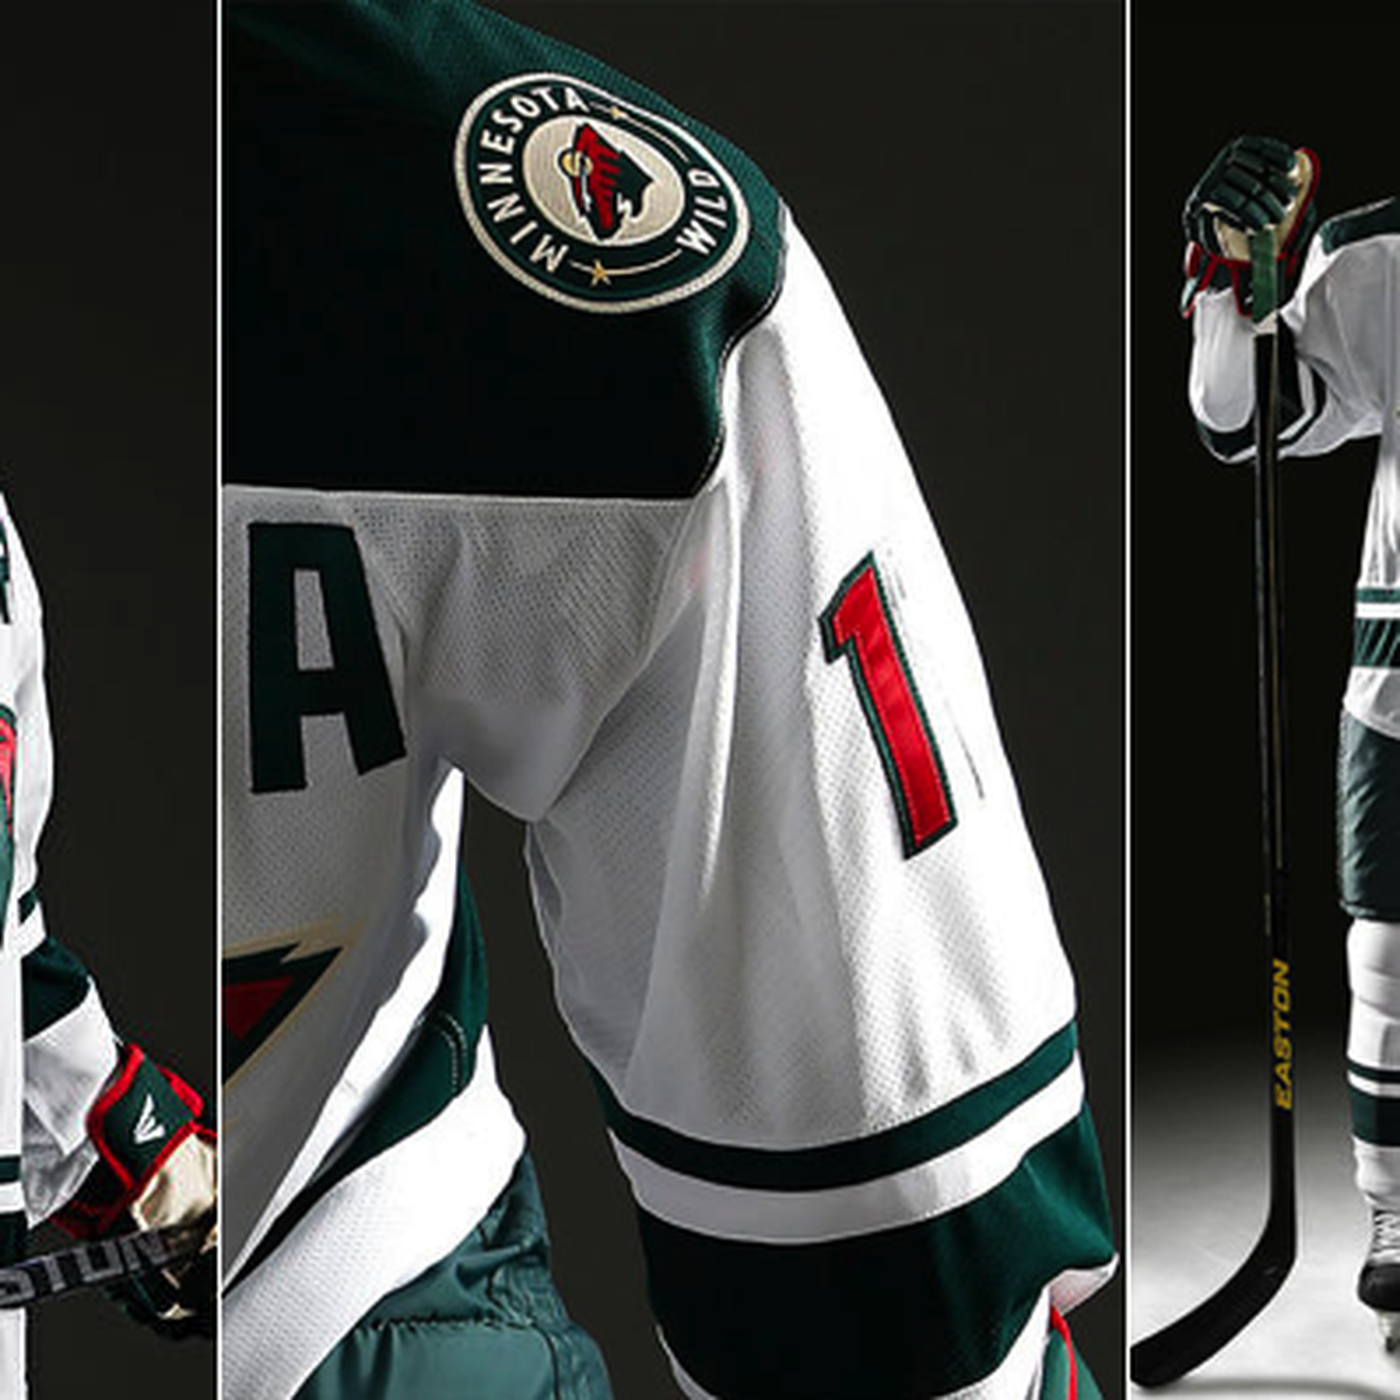 Wild s new road jerseys leak - SBNation.com 1fed21511